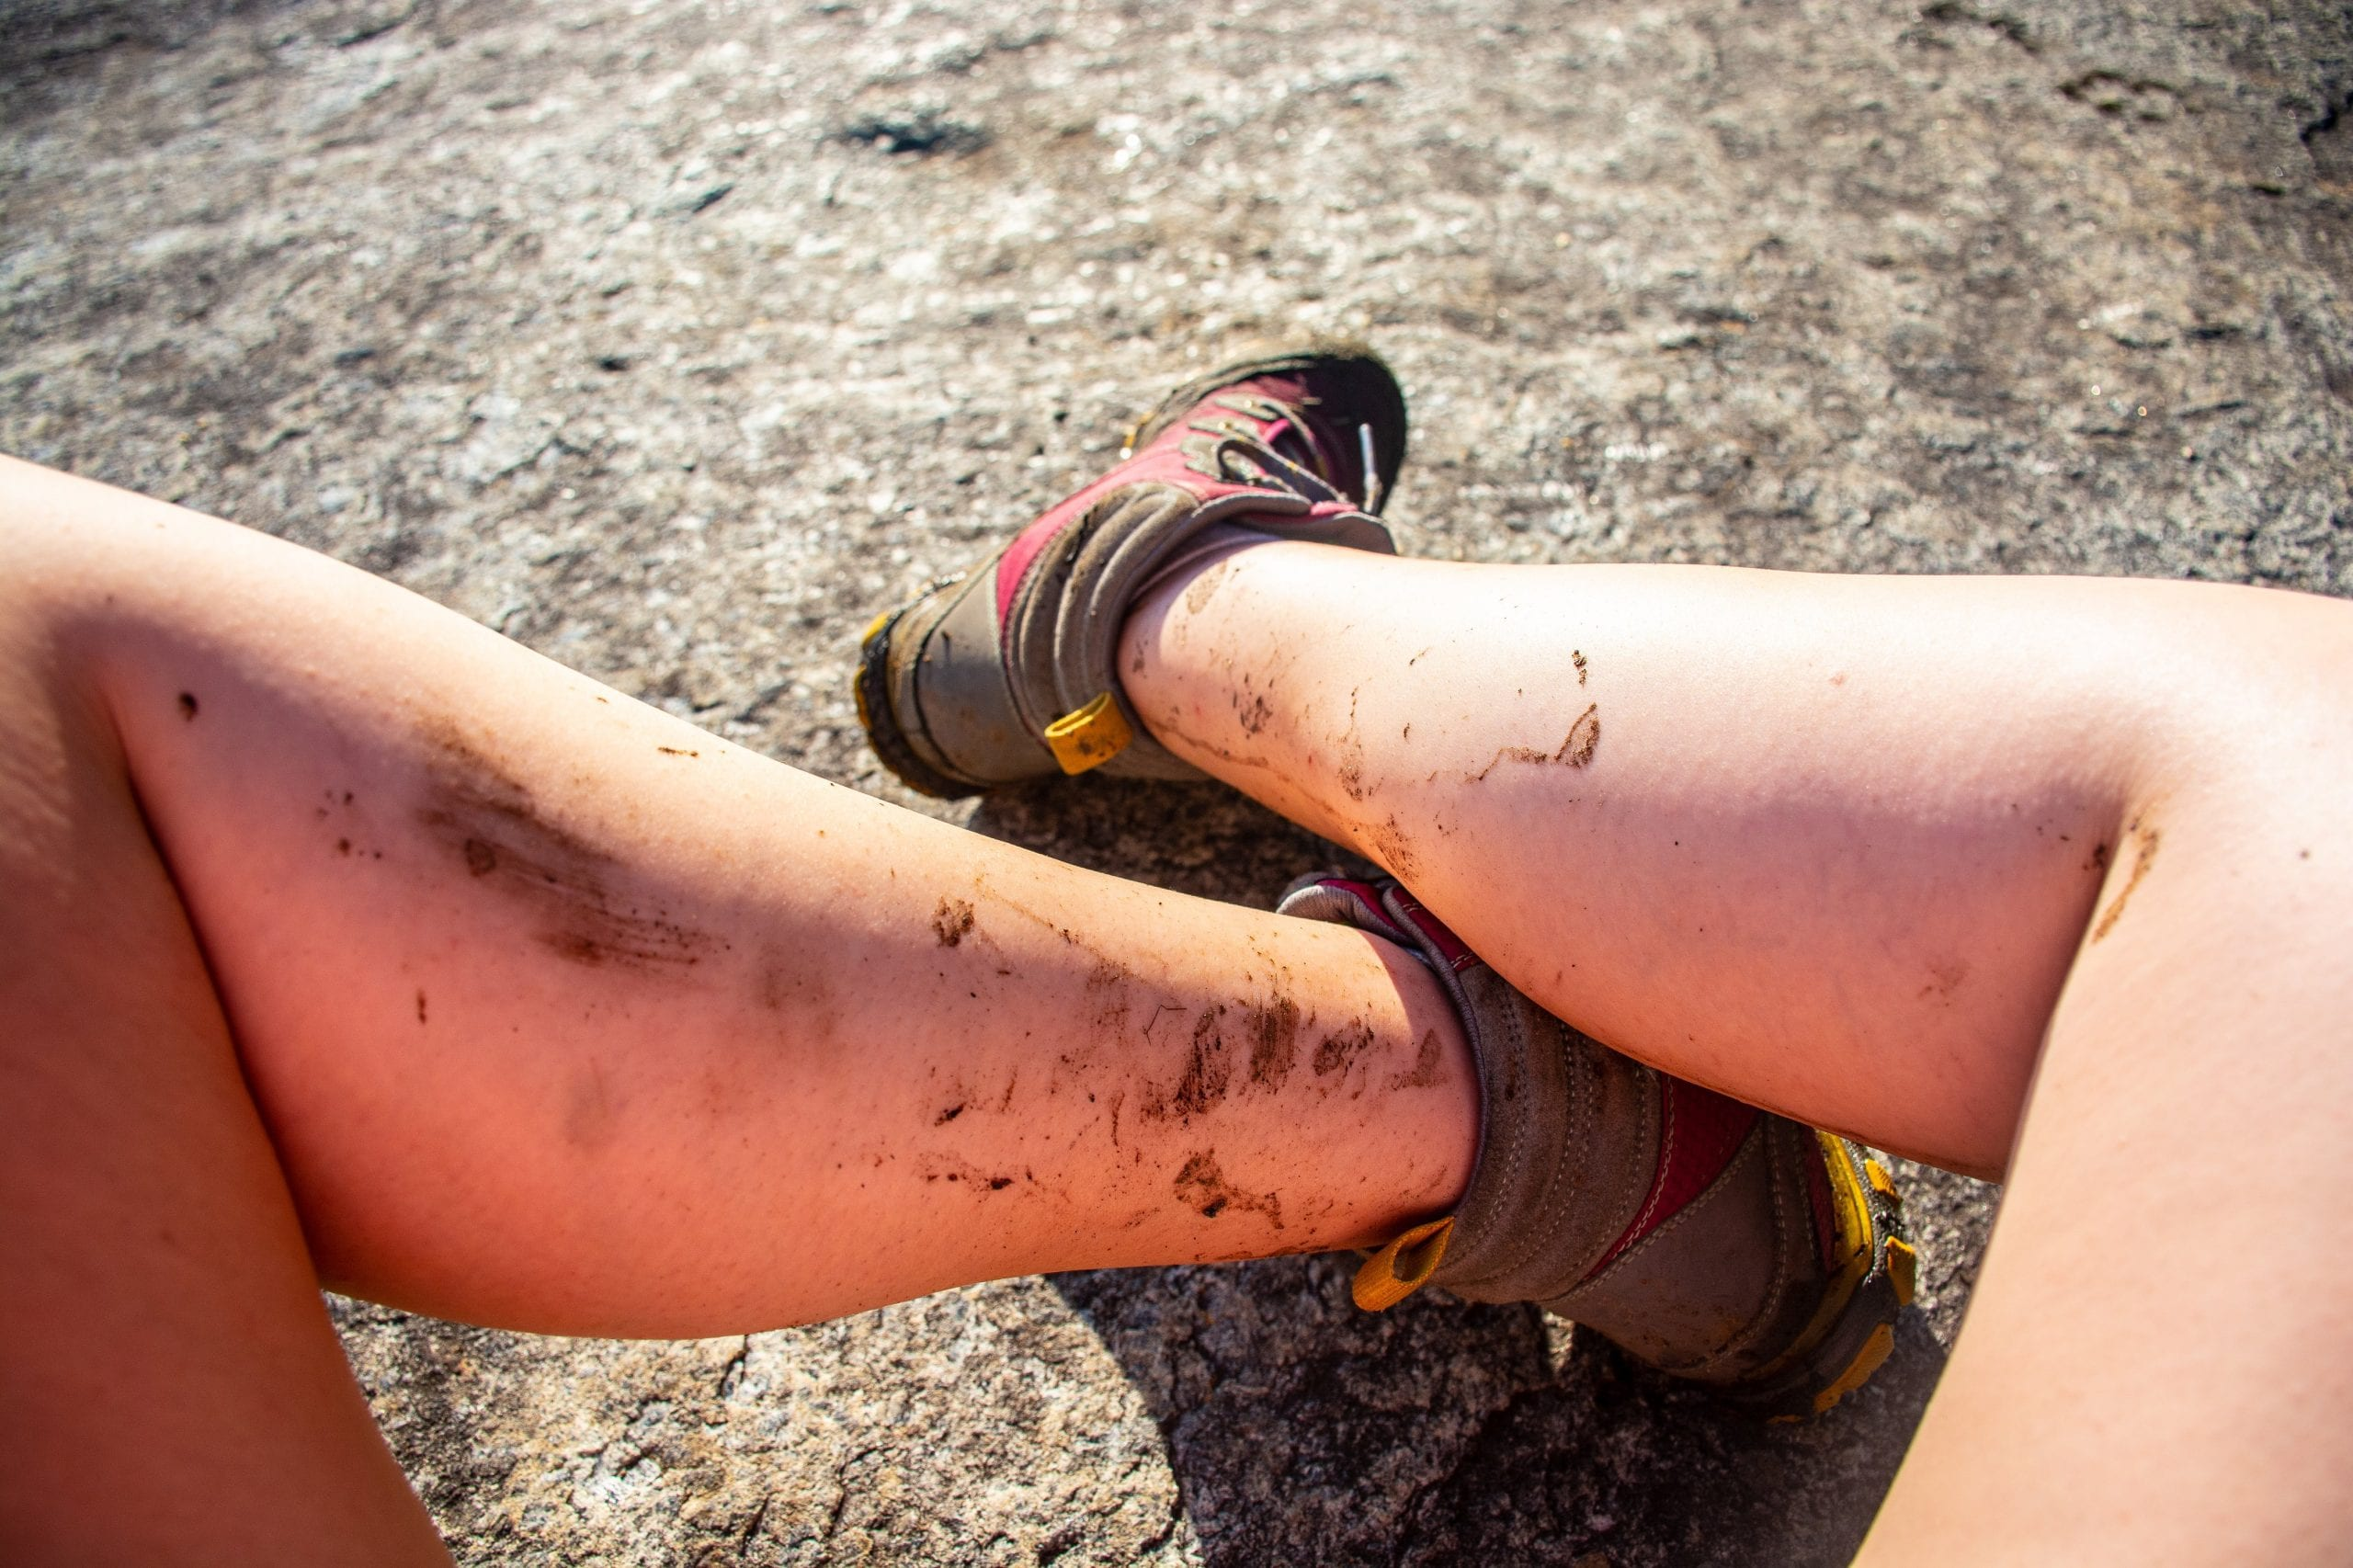 Legs splattered with mud